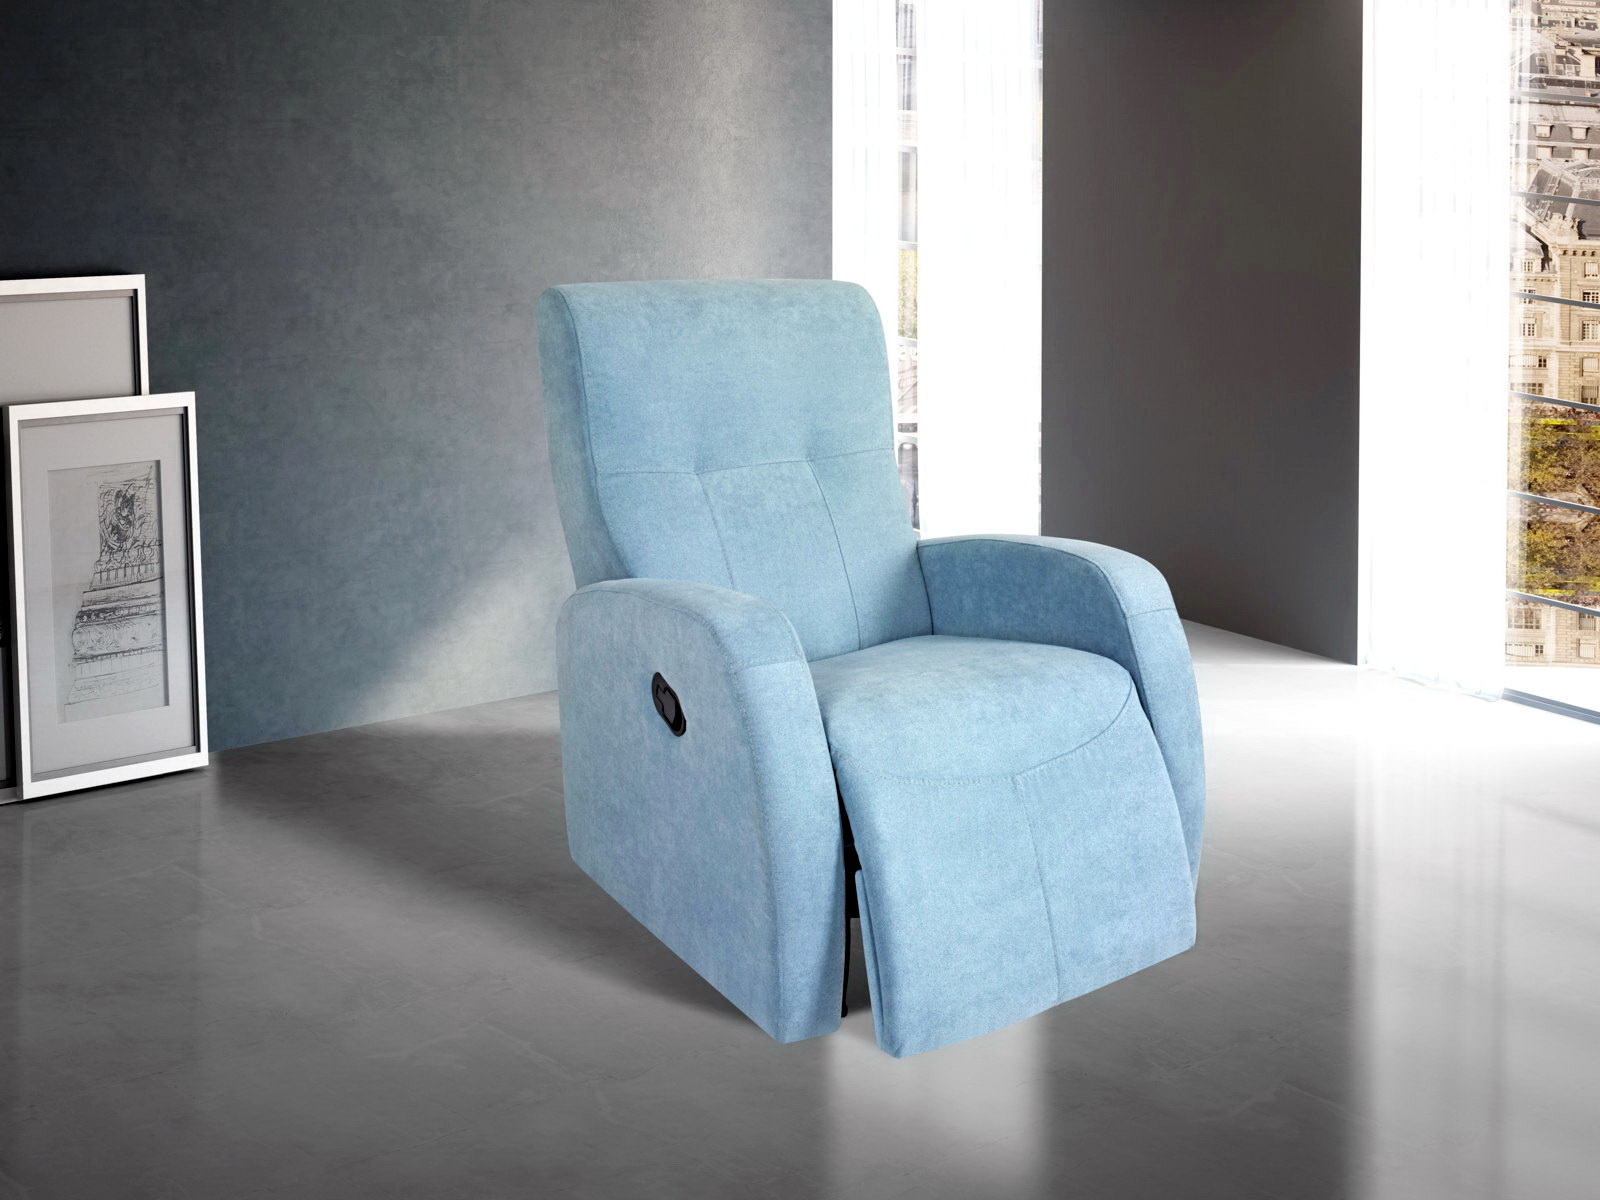 Sillones relax by requena muebles anto n for Muebles alarcon requena